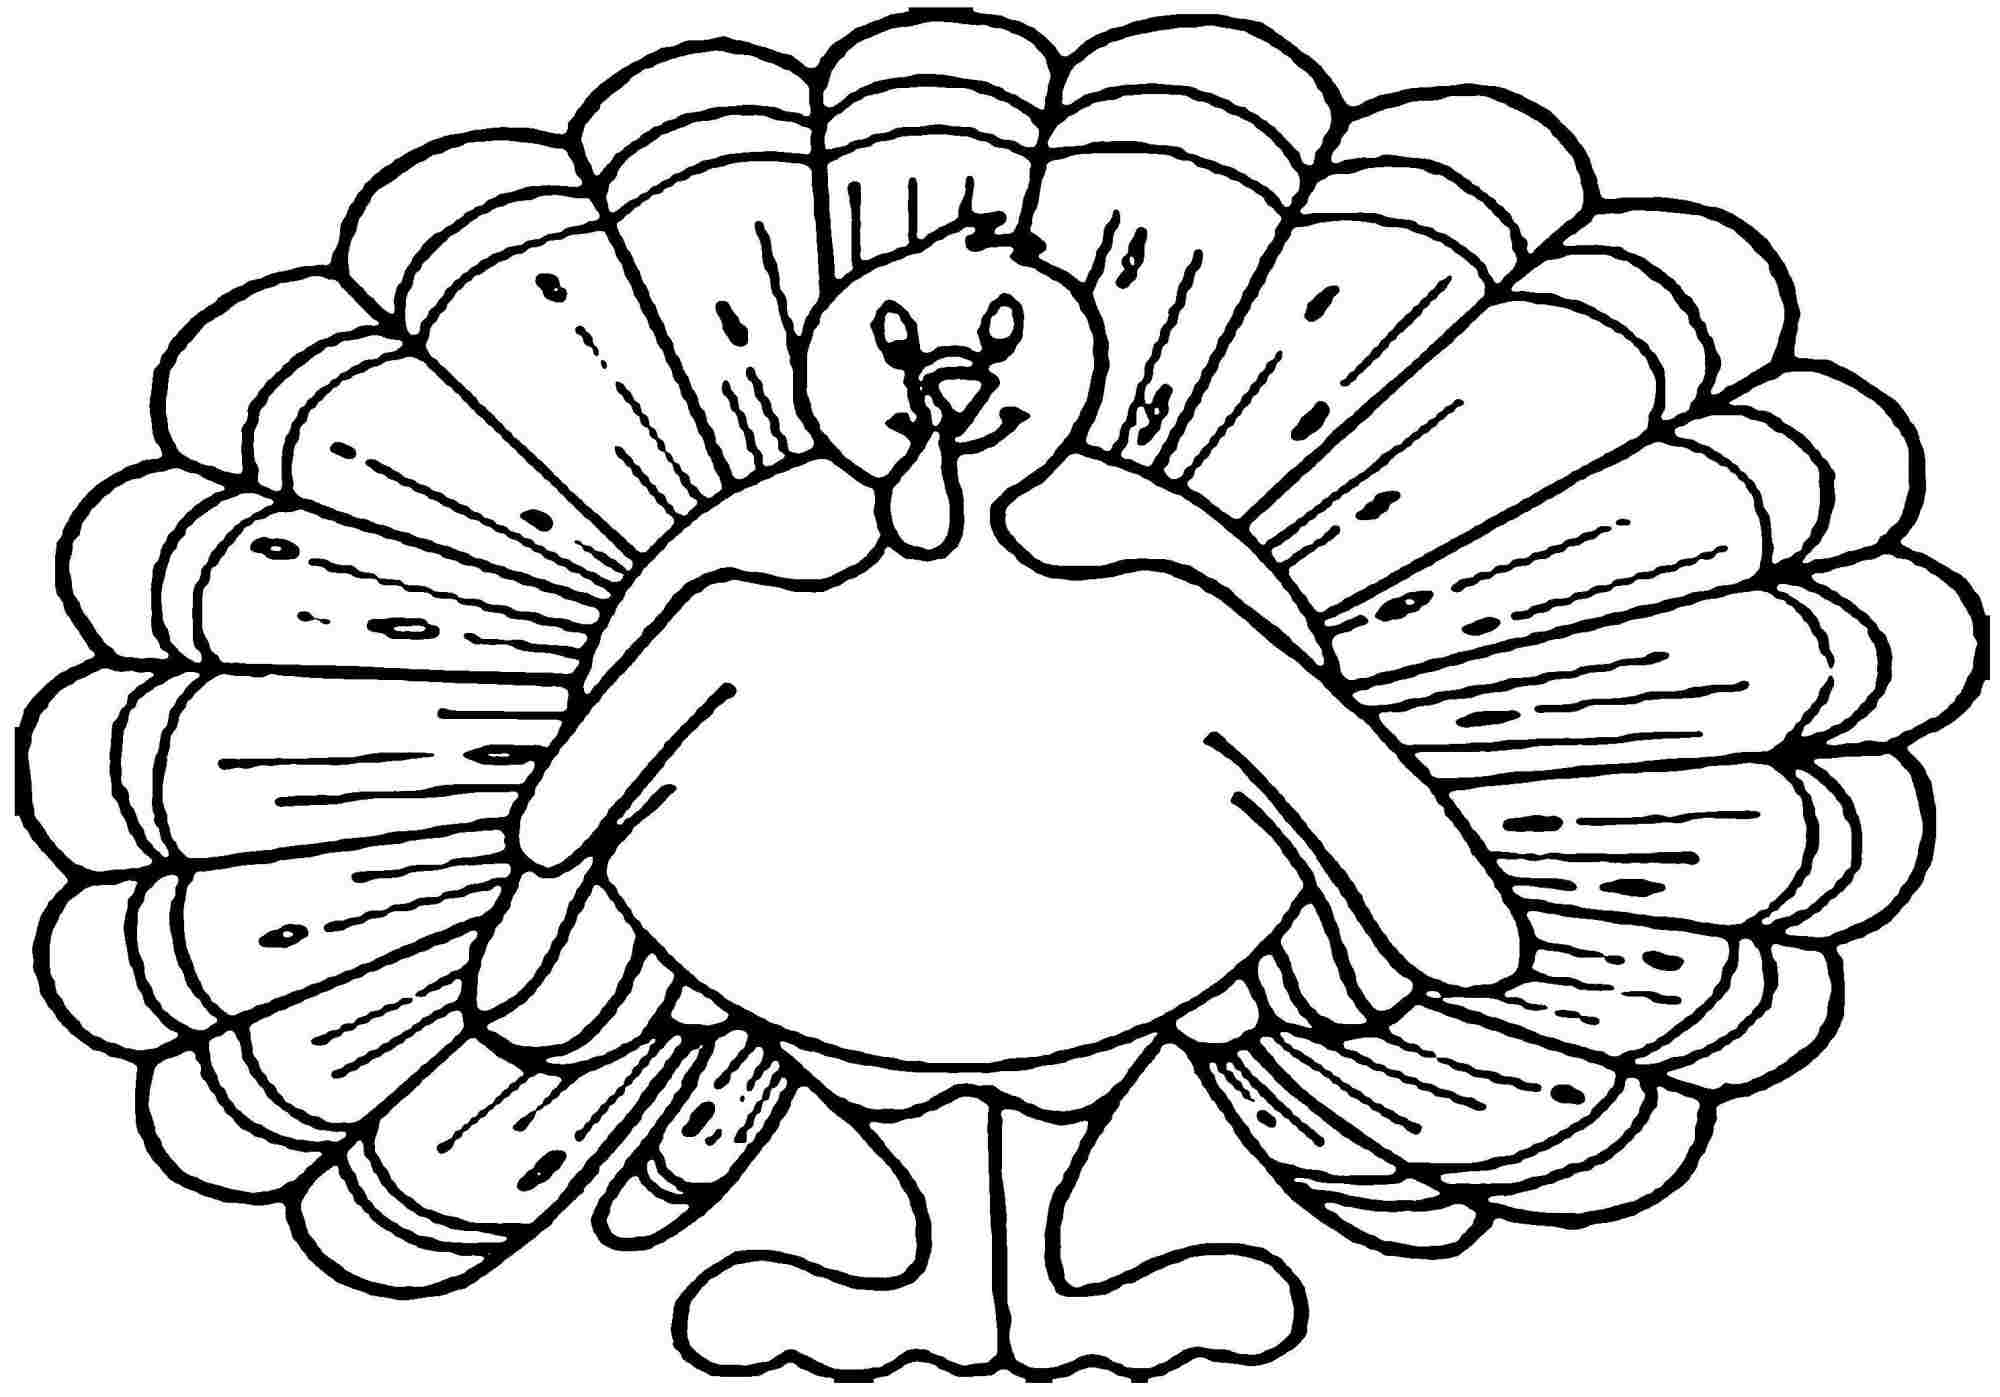 2000x1397 Turkey Coloring Pages For Kids At Page Glum Me Best Of Printable